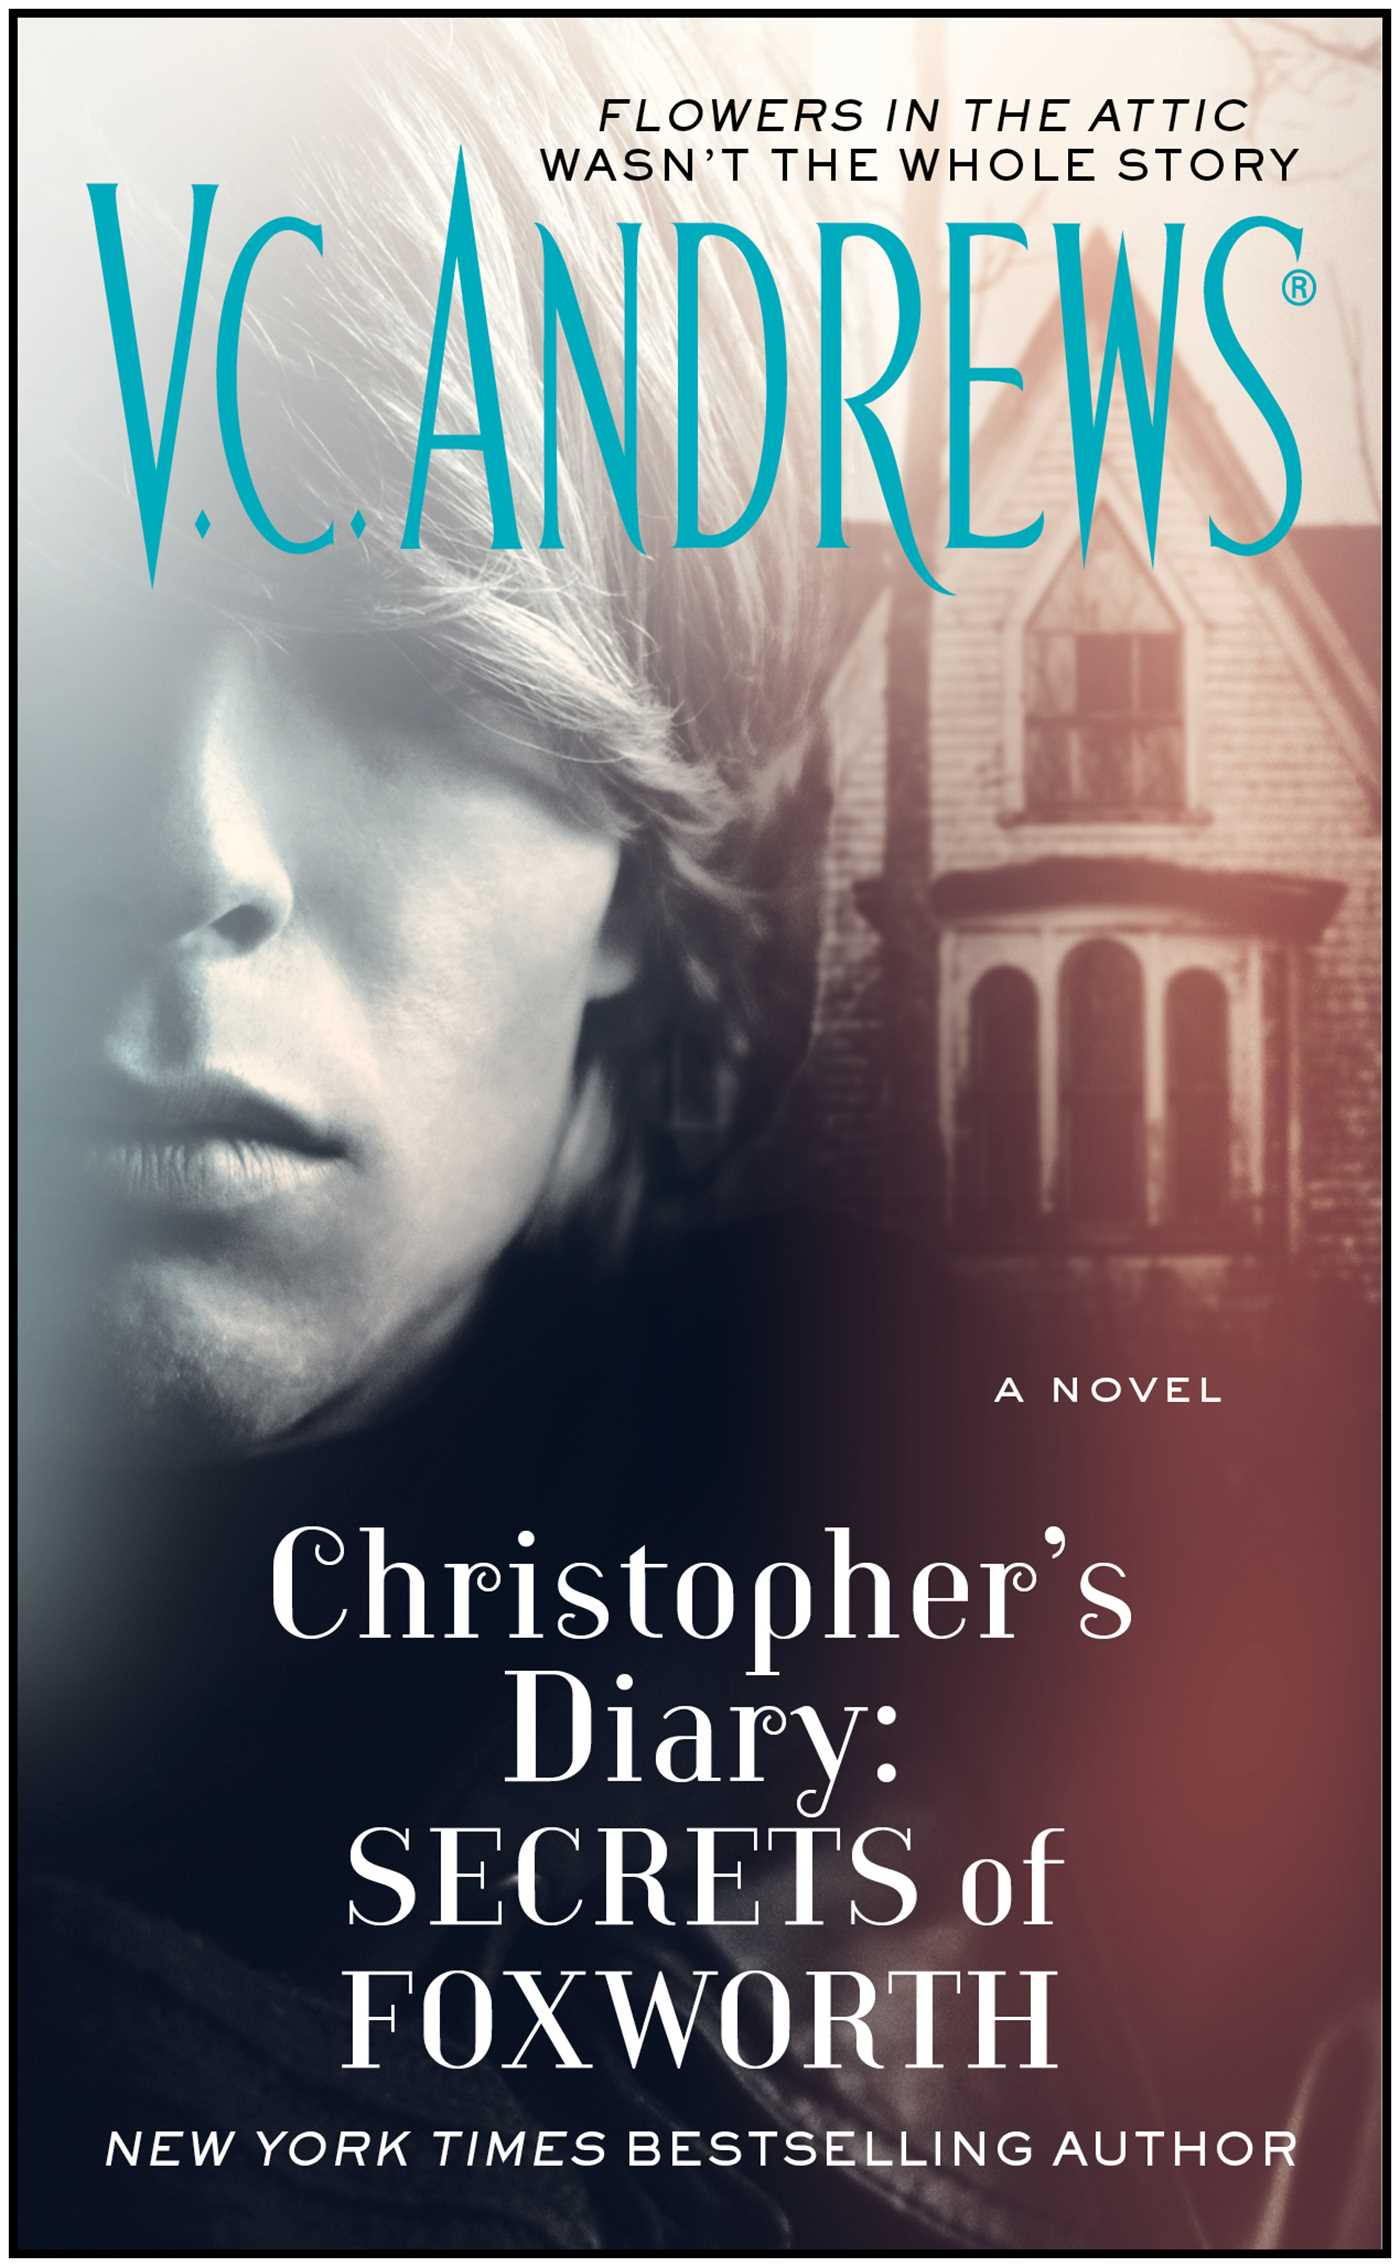 Christophers diary secrets of foxworth 9781476790619 hr